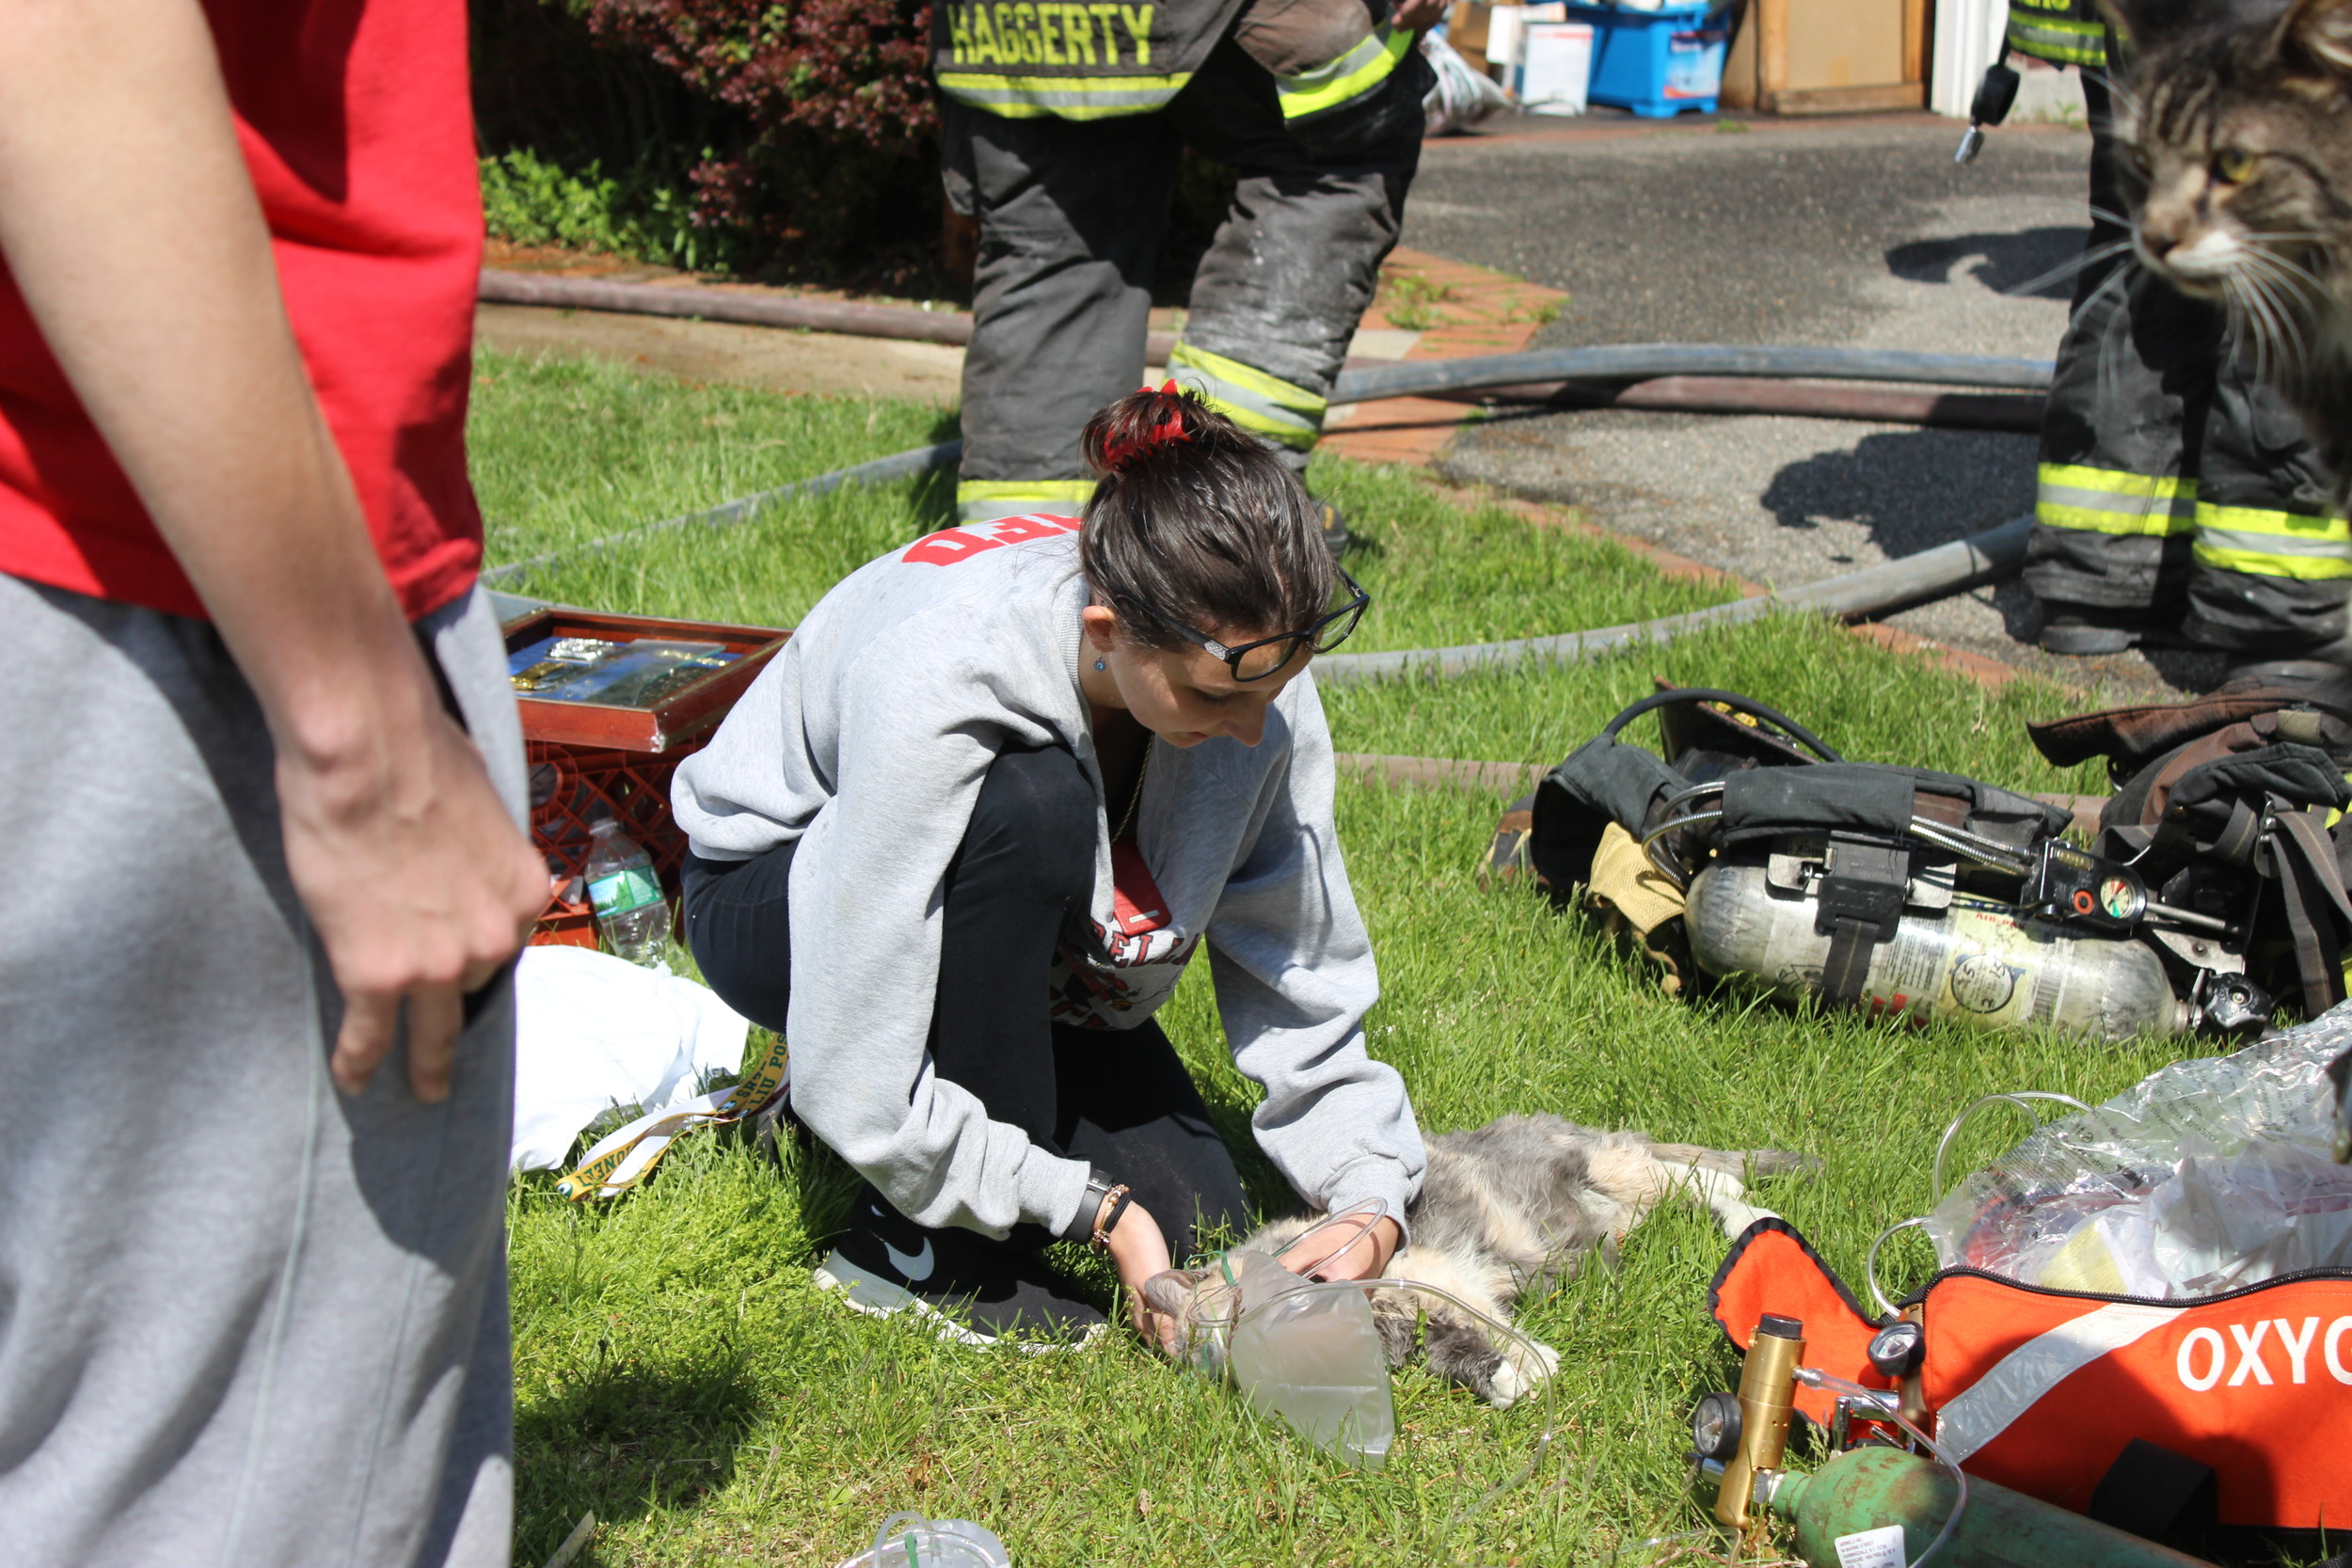 North Merrick junior firefighter Sierra Chasin took care of one of the Cosentino's cats, giving him oxygen and nursing him back to health.